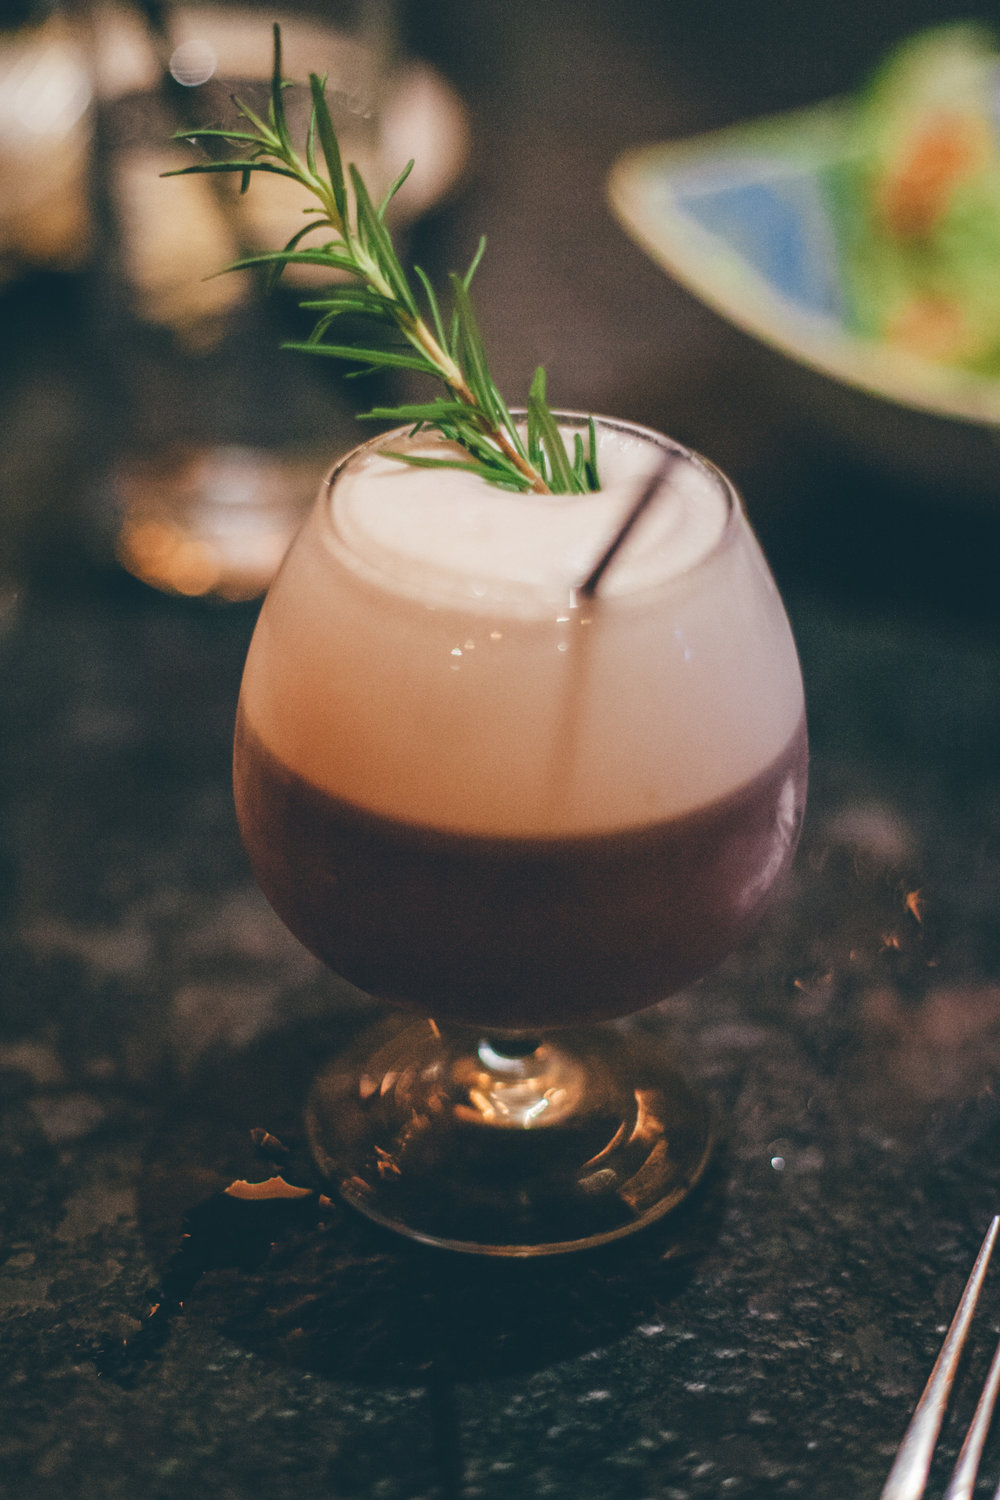 The Abigail: Plymouth Gin, Rothman & Winters Crème de Violette, lemon, blueberries, rosemary, egg white